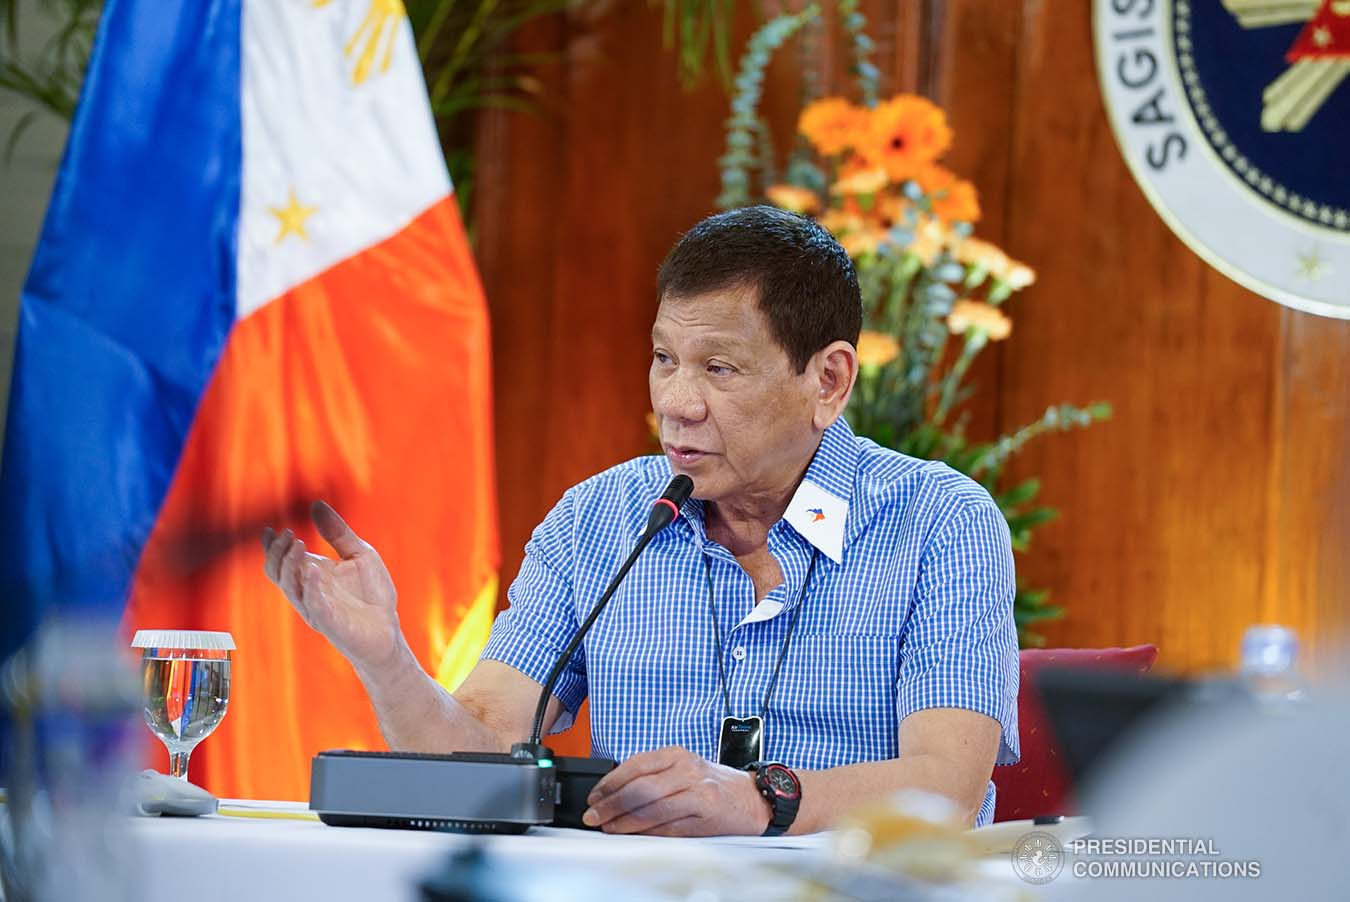 President Rodrigo Roa Duterte talks to the people after holding a meeting with the Inter-Agency Task Force on the Emerging Infectious Diseases (IATF-EID) core members at the Malago Clubhouse in Malacañang on July 15, 2020. KING RODRIGUEZ/PRESIDENTIAL PHOTO